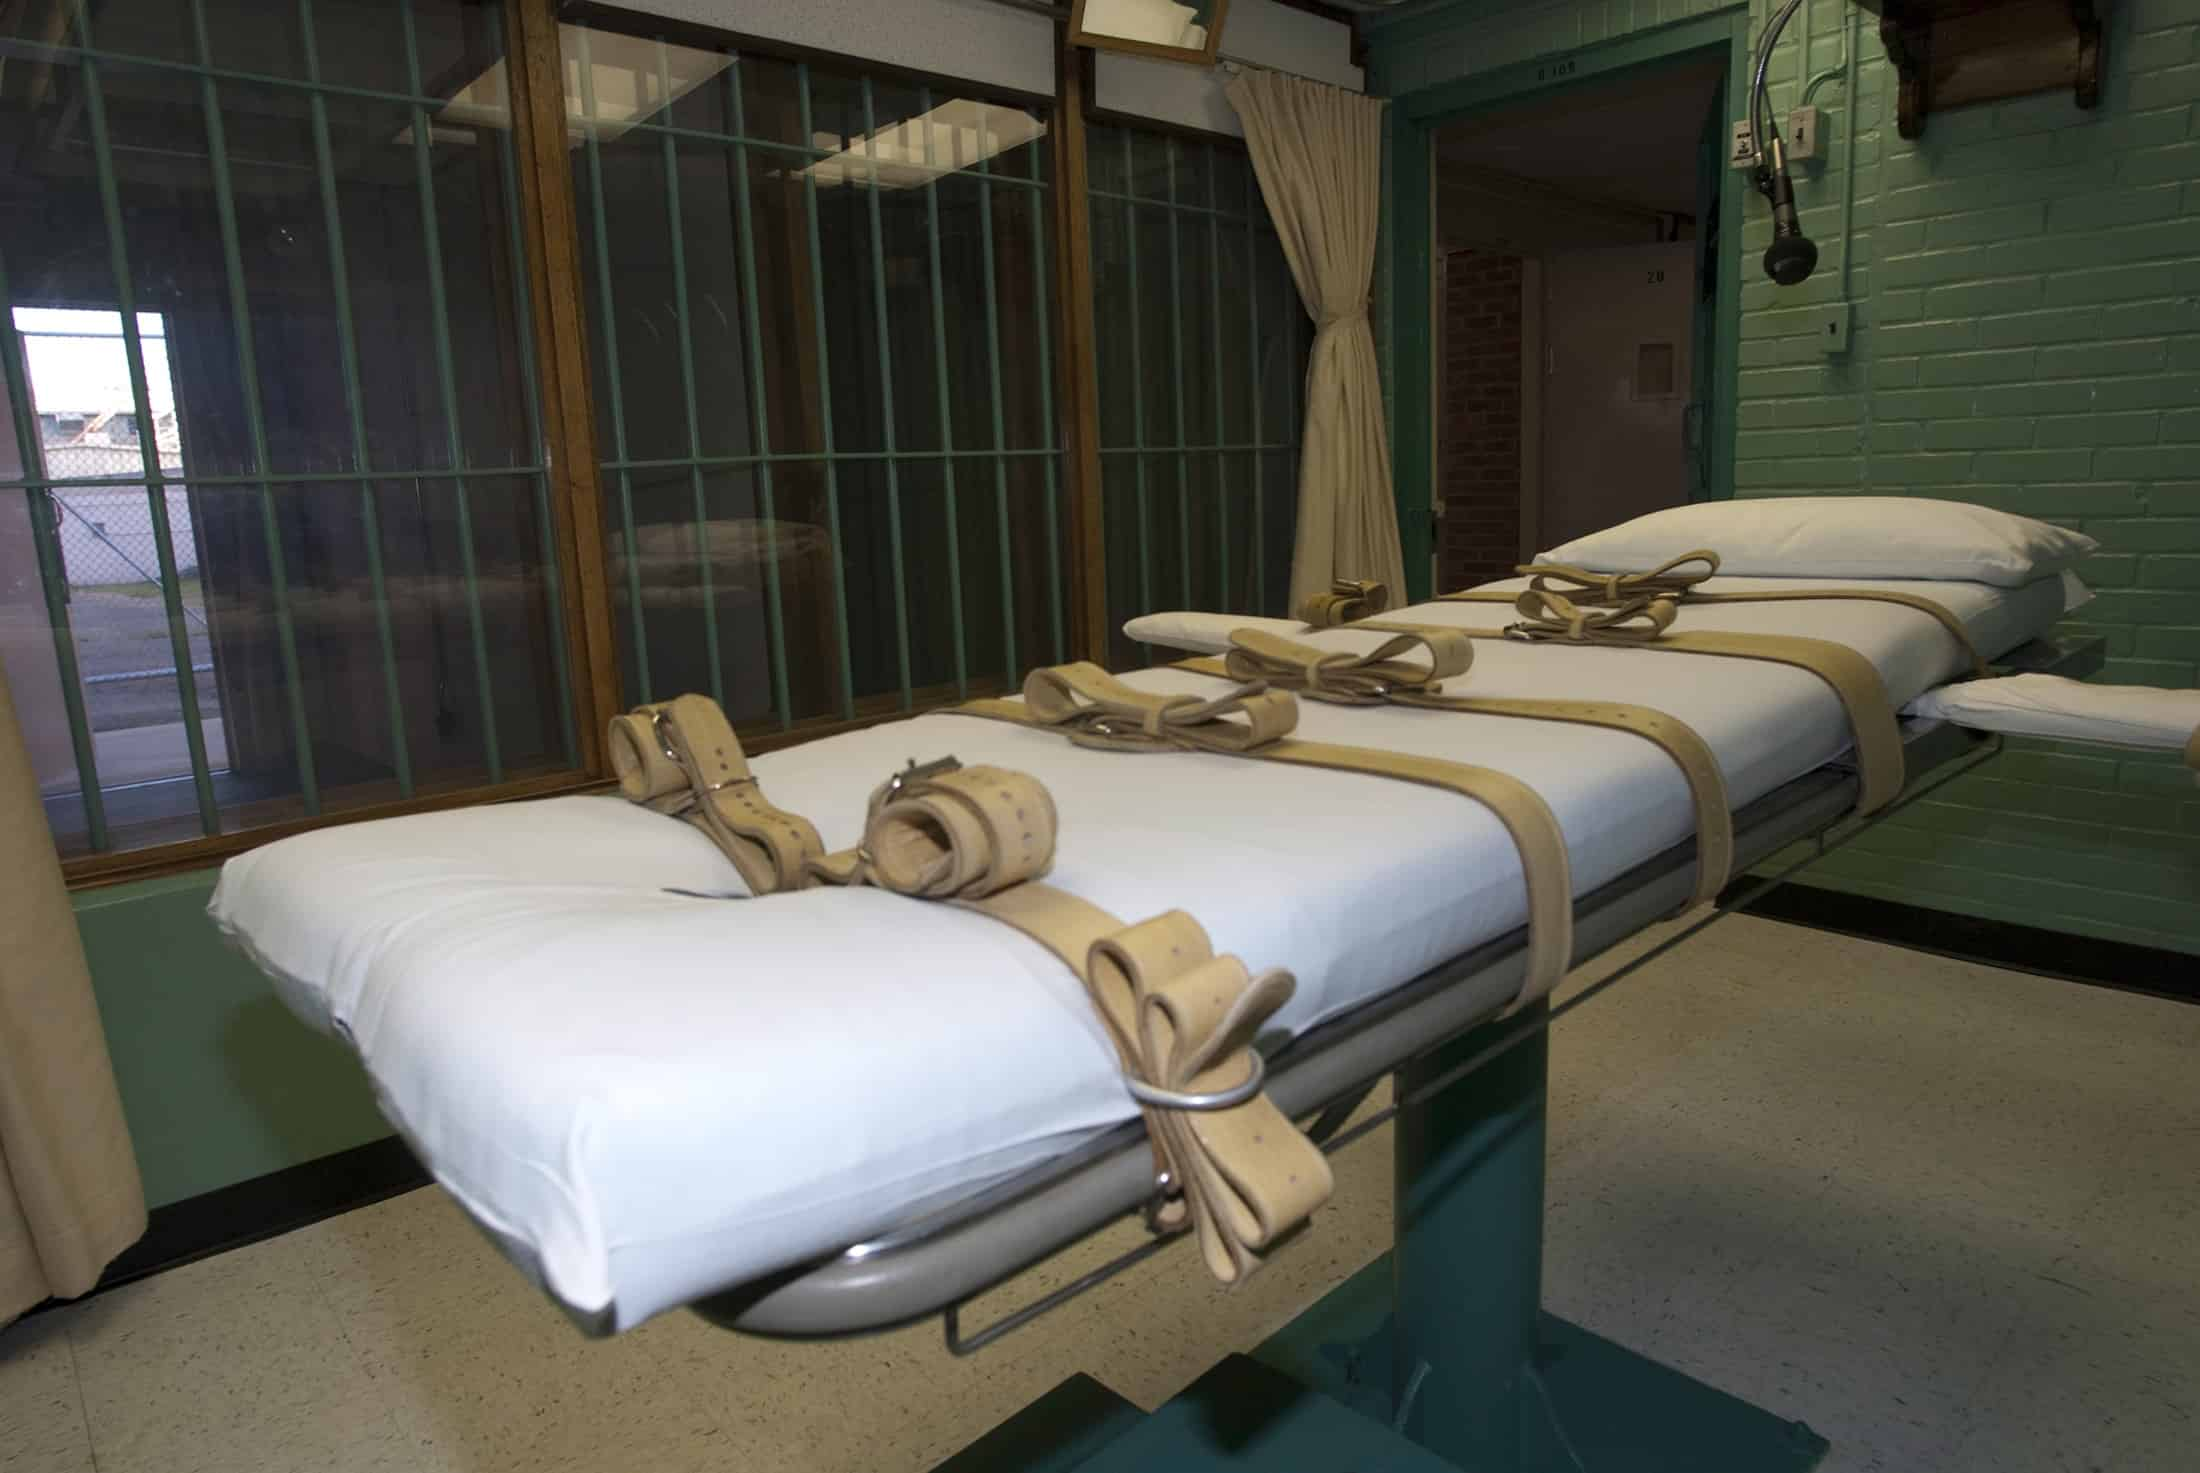 Willful Obstinance: Catholics and the Death Penalty